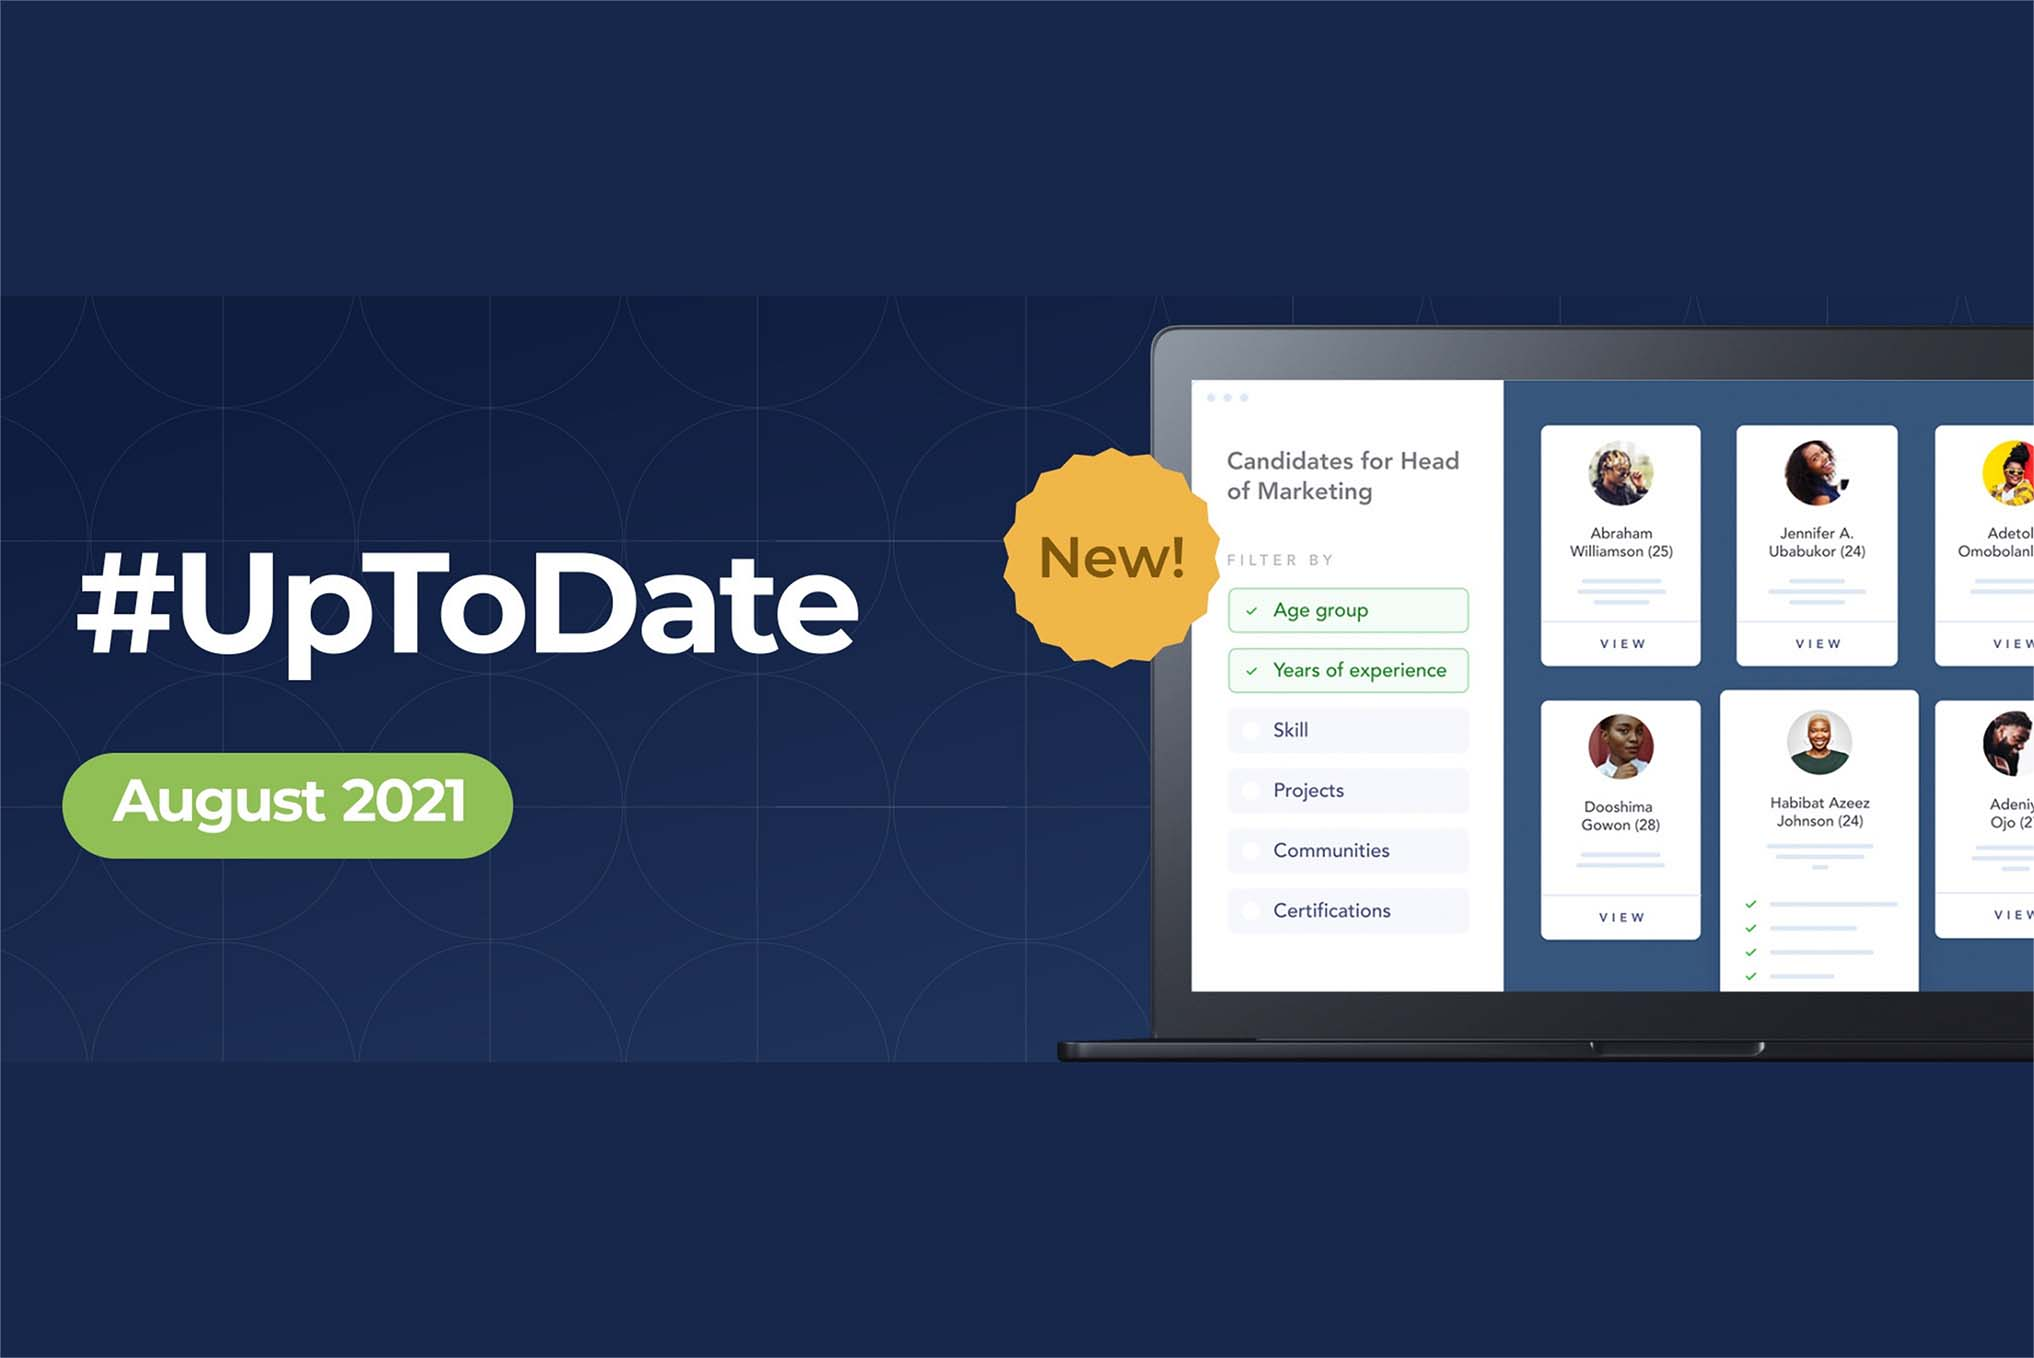 up-to-date-featured-image